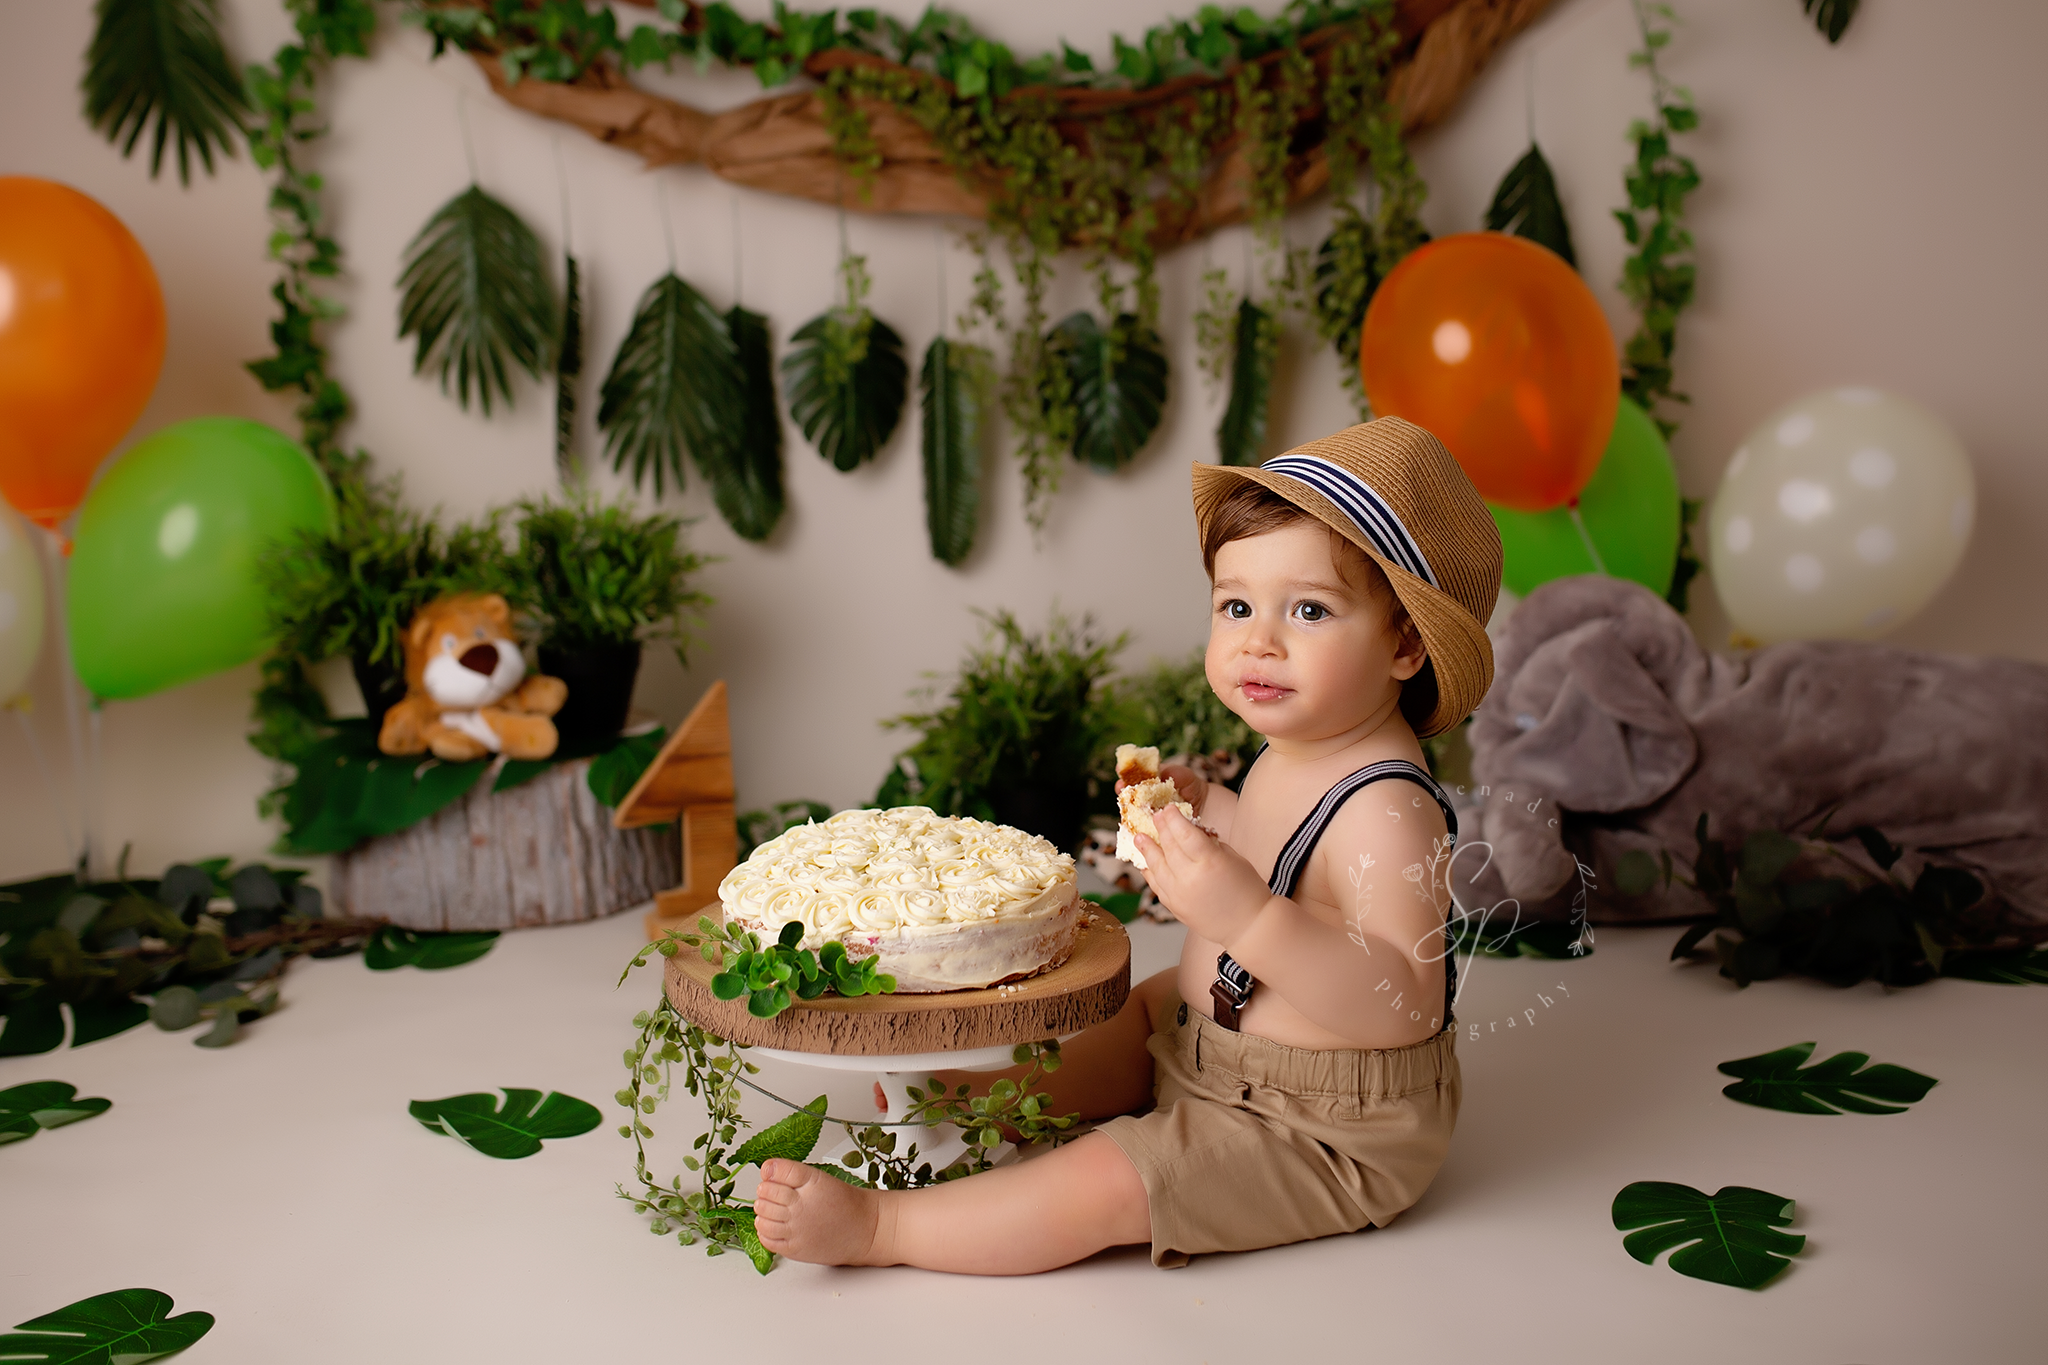 safari themed birthday photoshoot with baby boy wearing hat